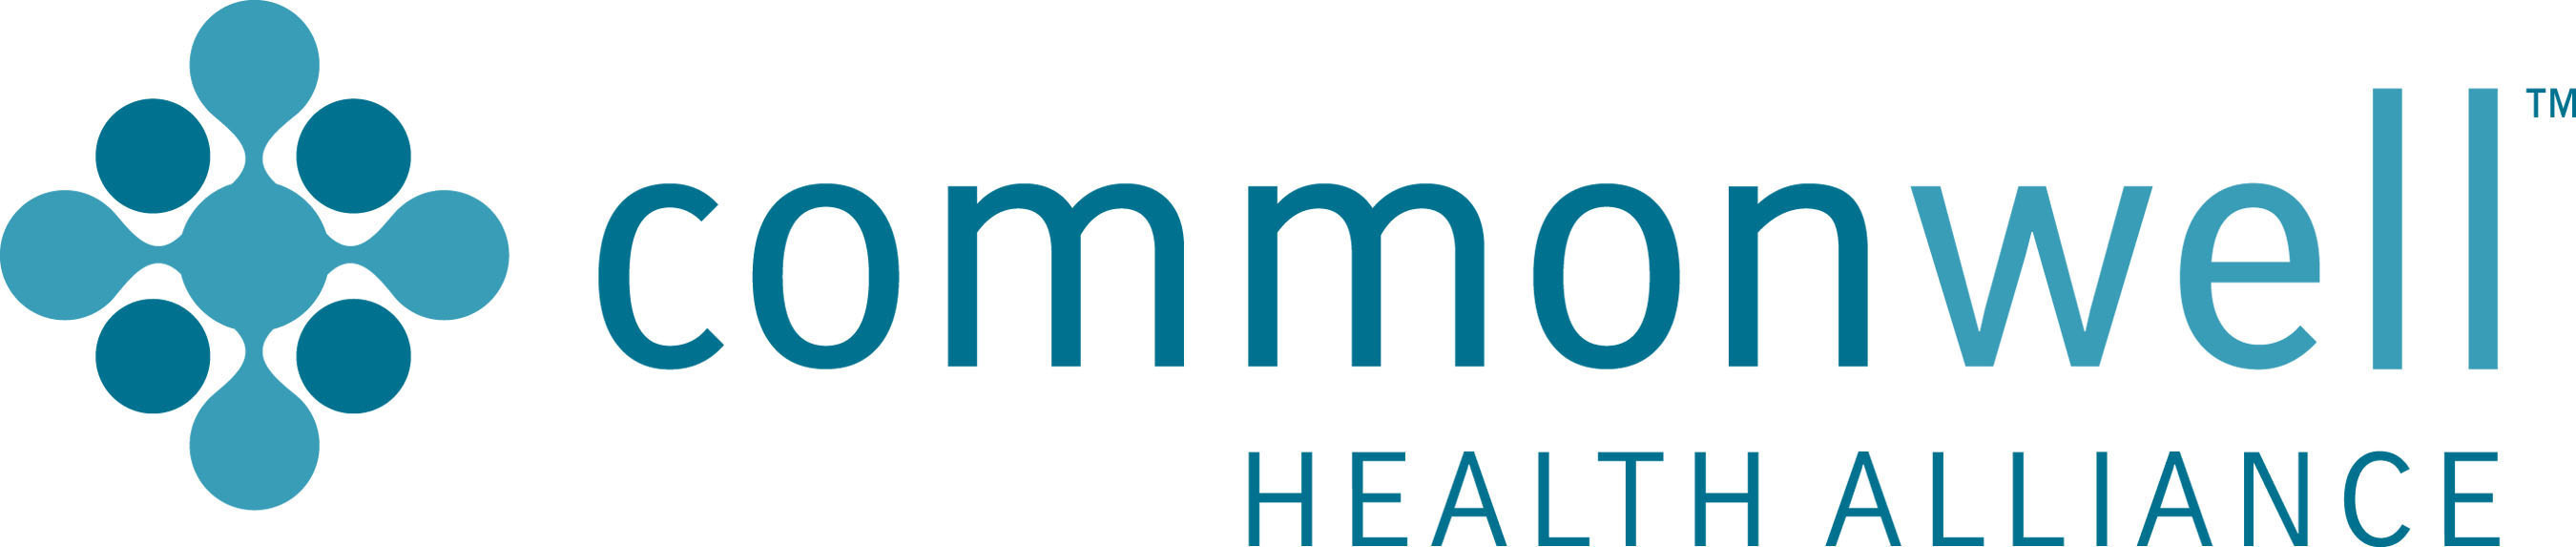 CommonWell Health Alliance is a non-profit trade association of health IT companies working together to create ...